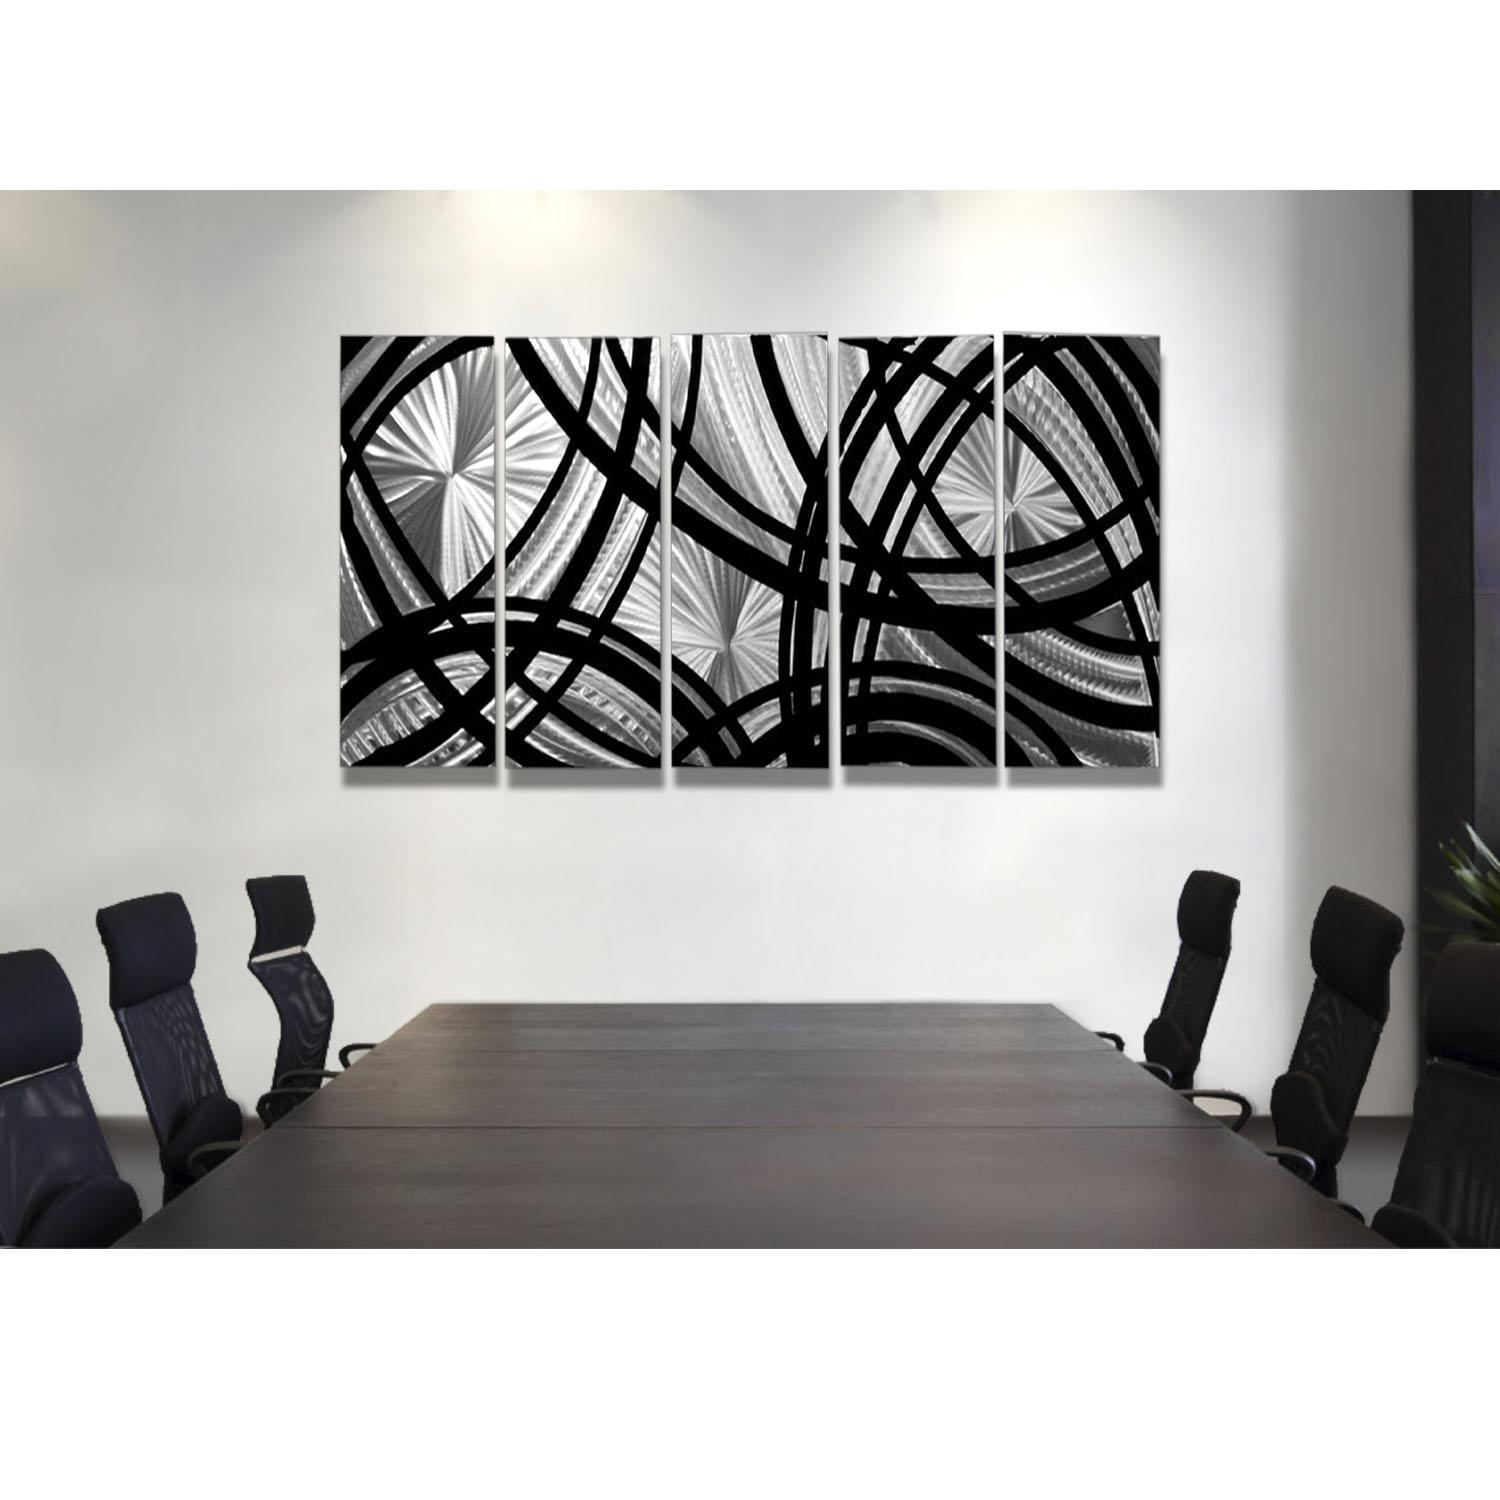 20 Best Ideas Black Silver Wall Art Wall Art Ideas